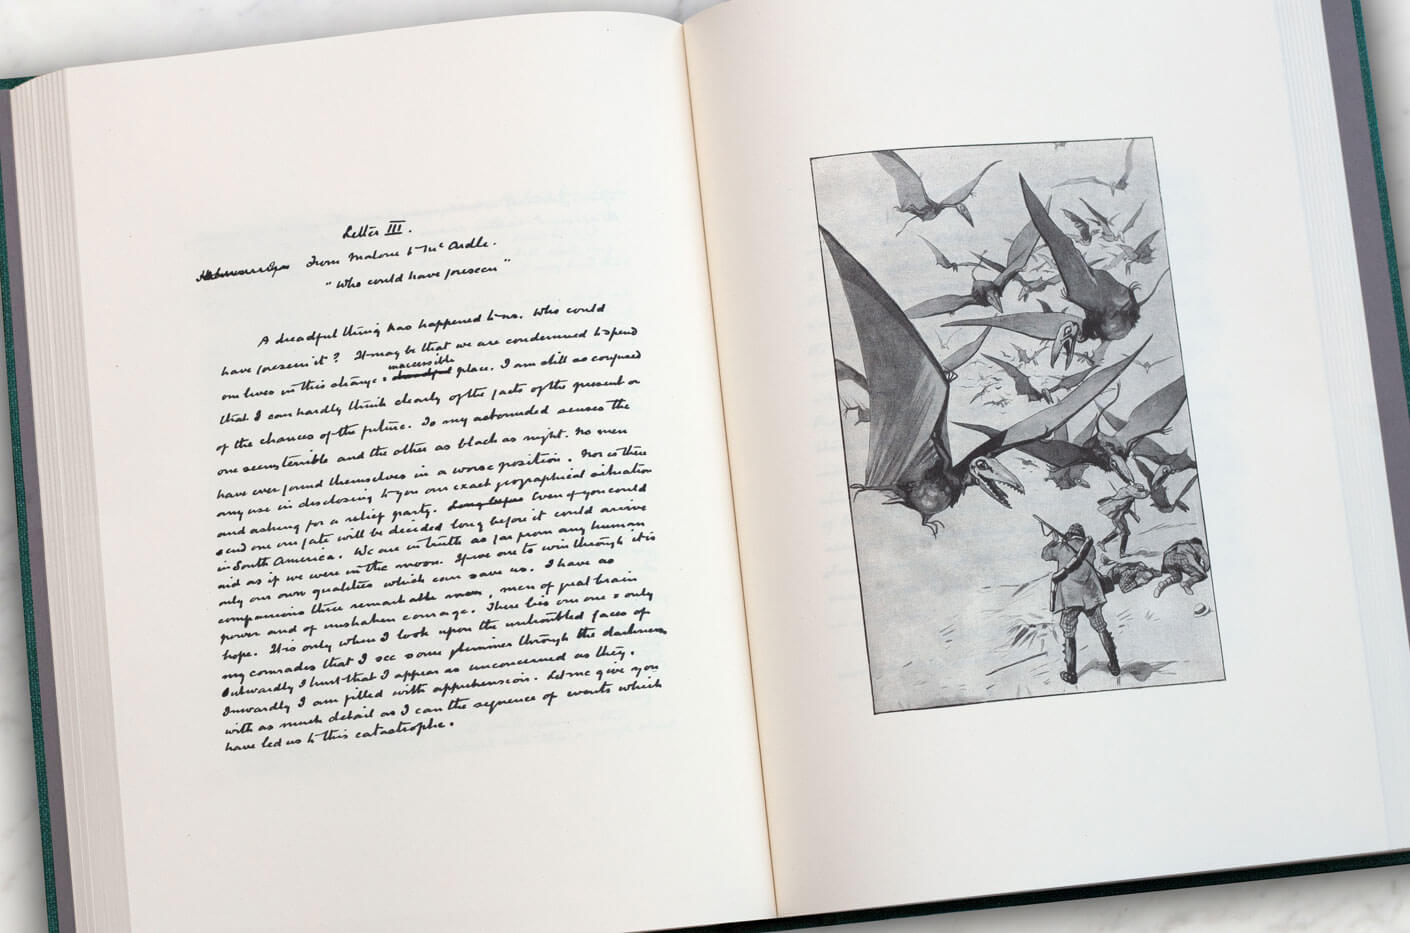 The manuscript of The Lost World